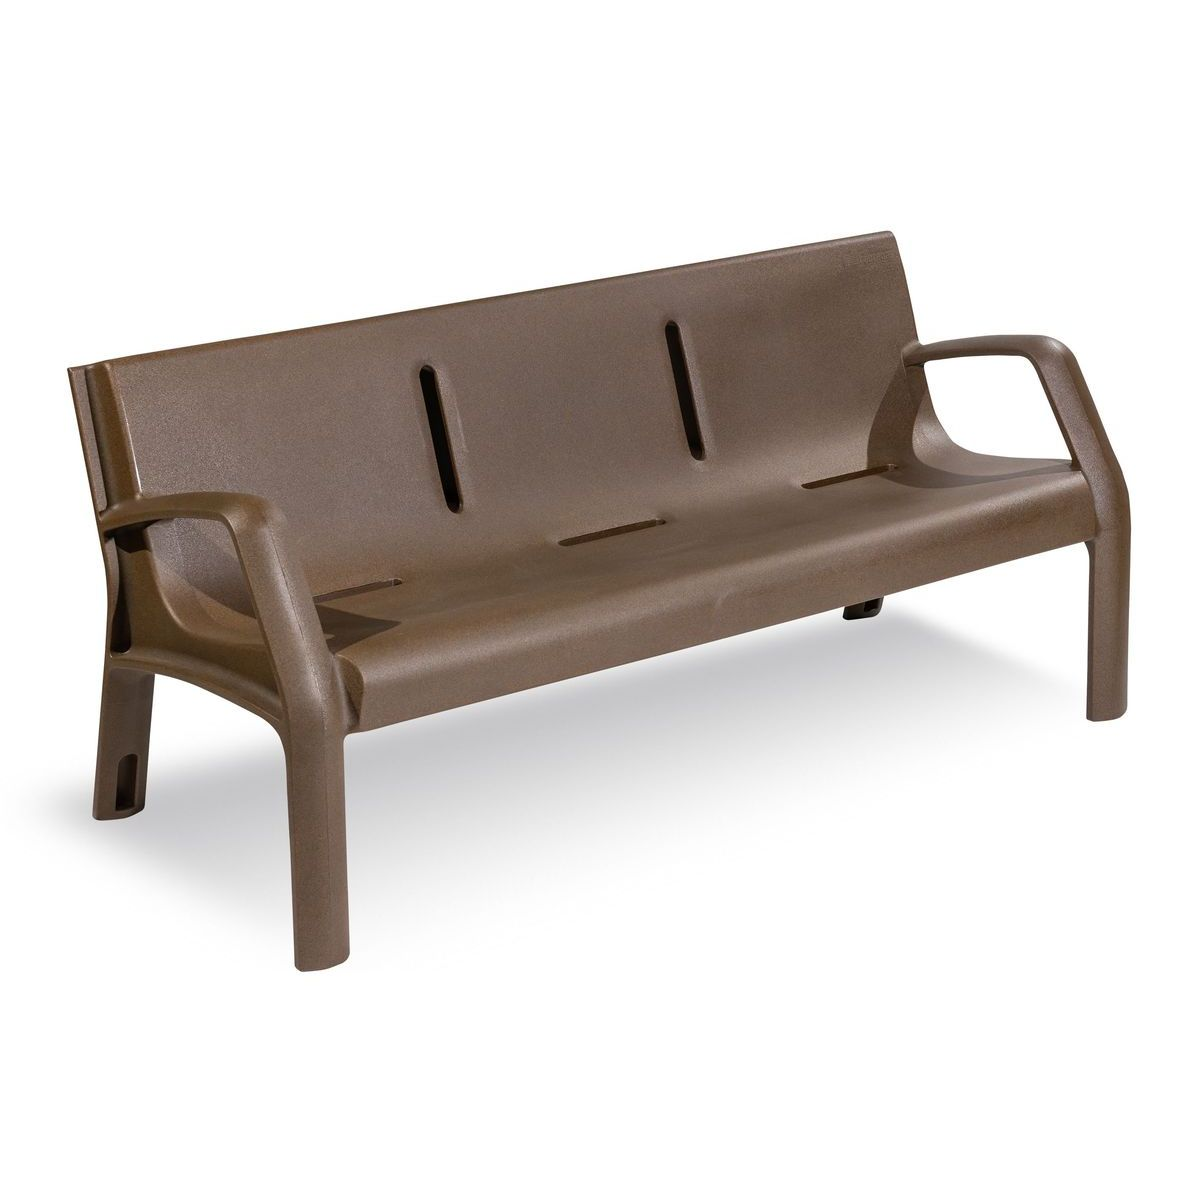 Alvium Bench Bronze C-1017-9959